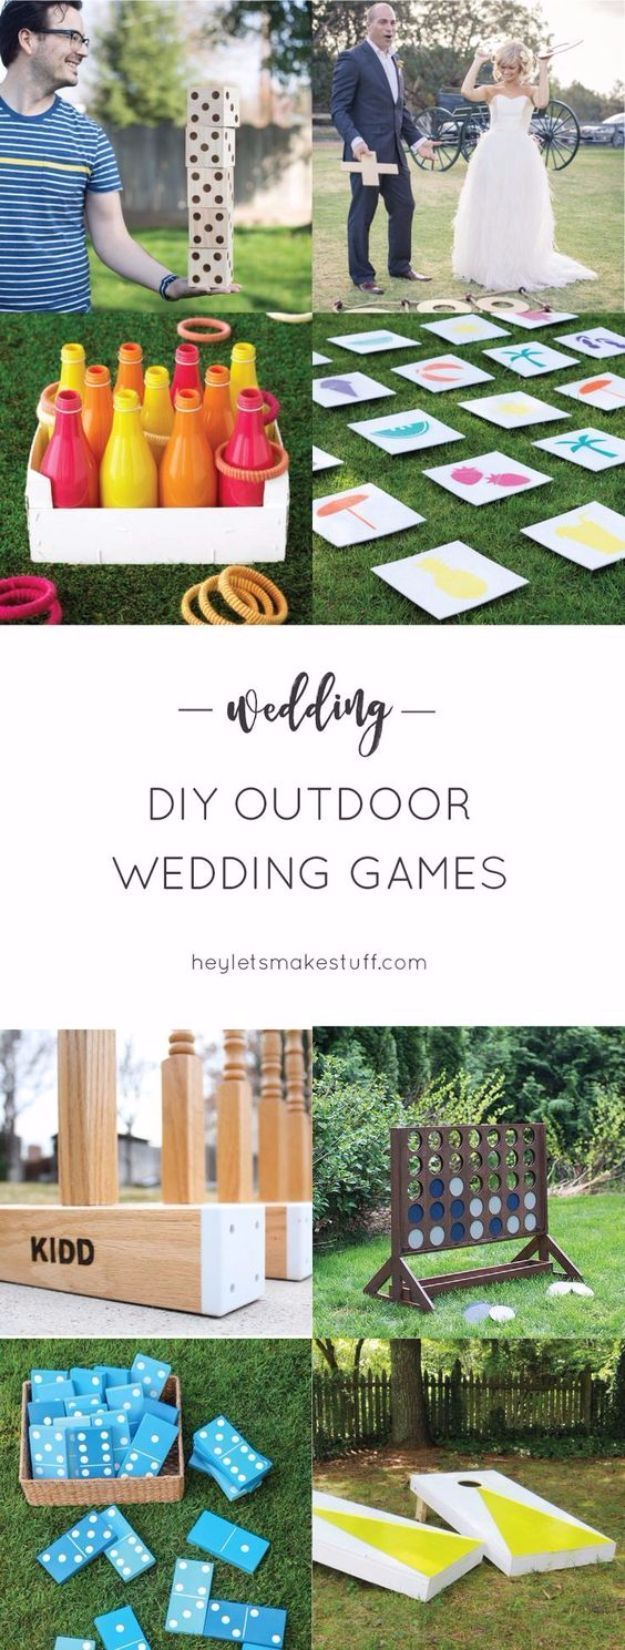 41 Best DIY Ideas for Your Outdoor Wedding - decor, games, seating signs... everything you can think of!